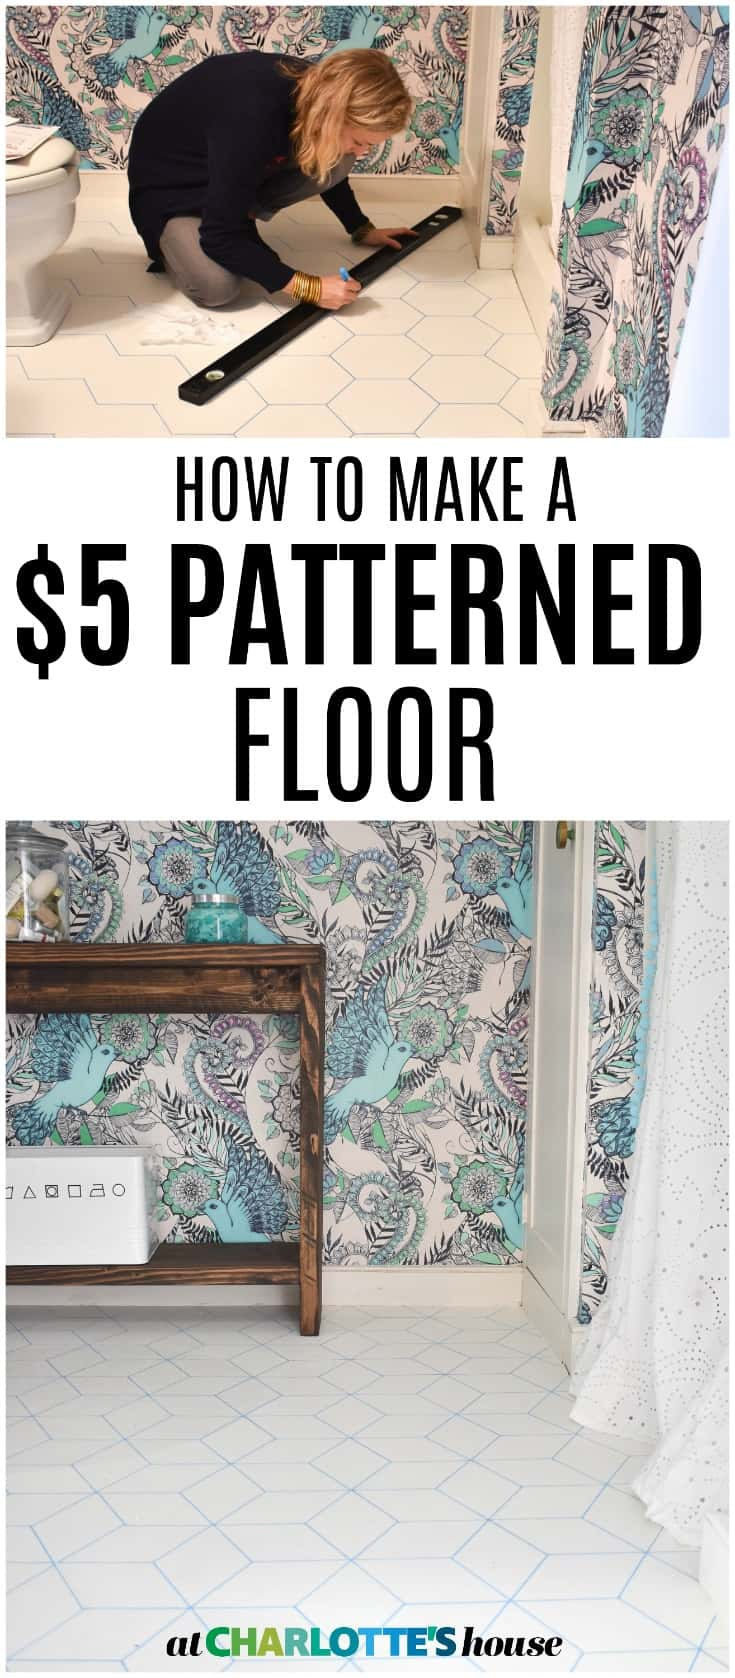 how to revive a dated vinyl floor for $5!